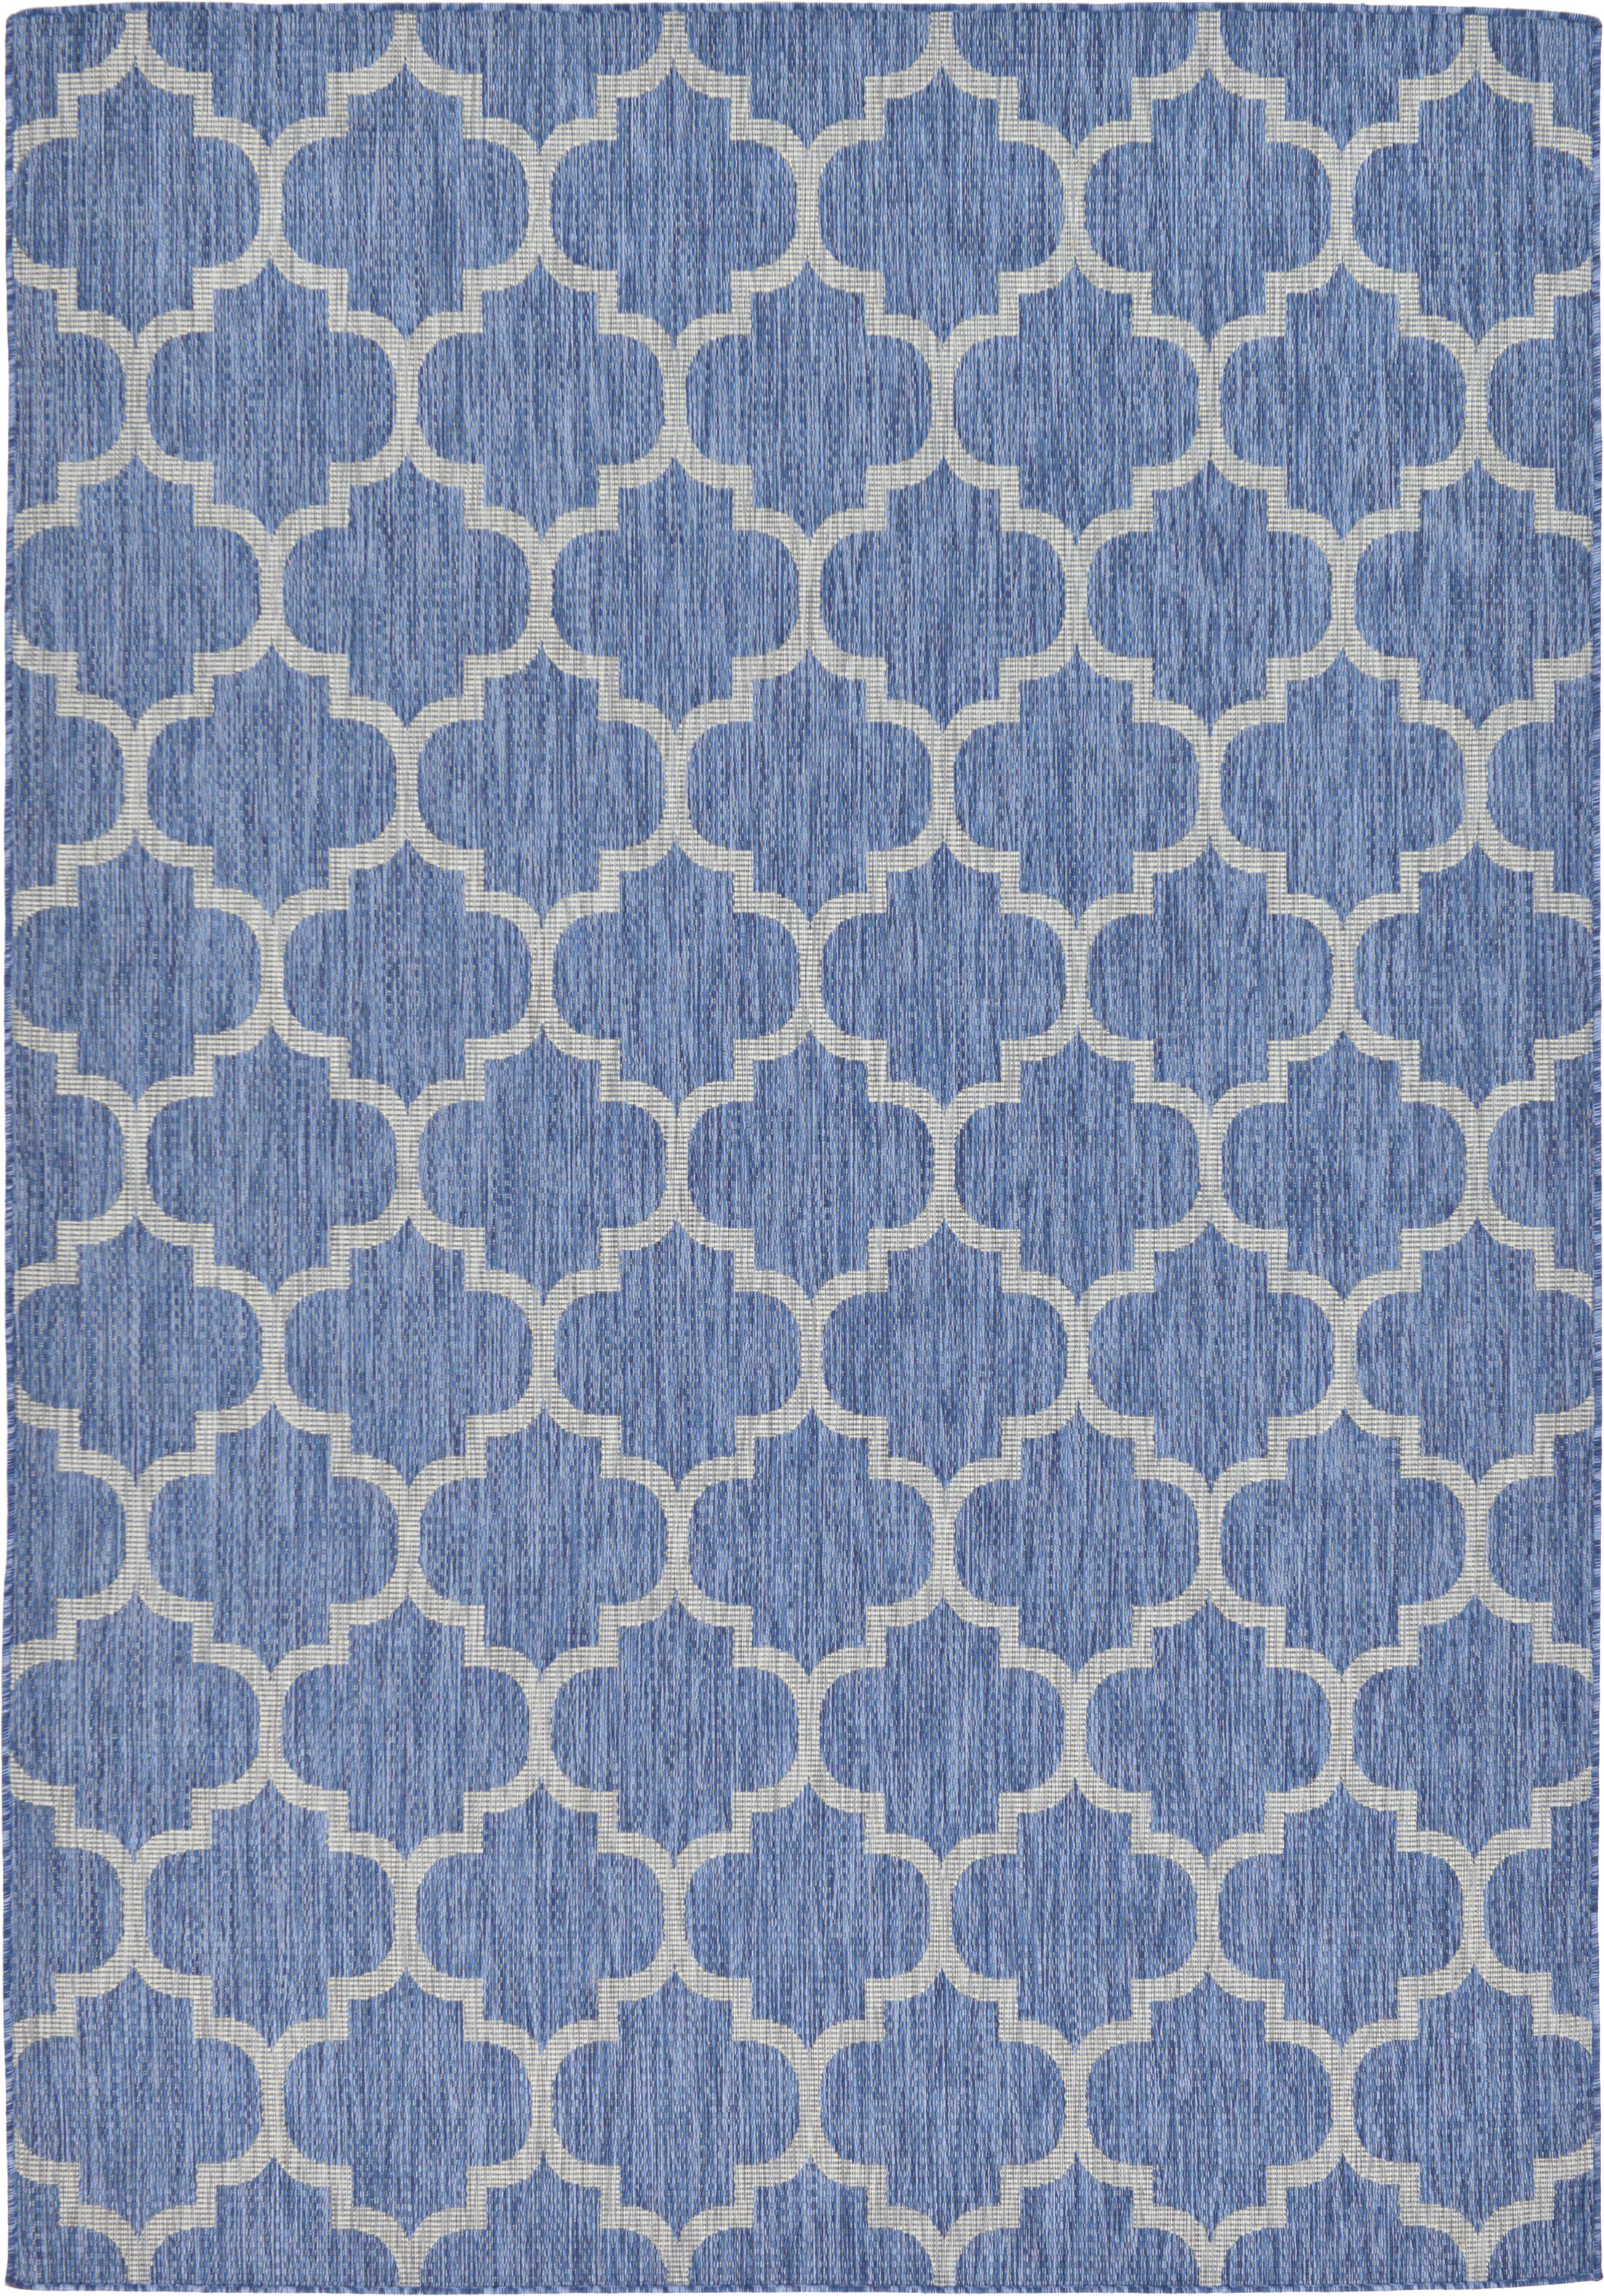 Harding Blue Outdoor Area Rug Rug Size: Rectangle 7' x 10'